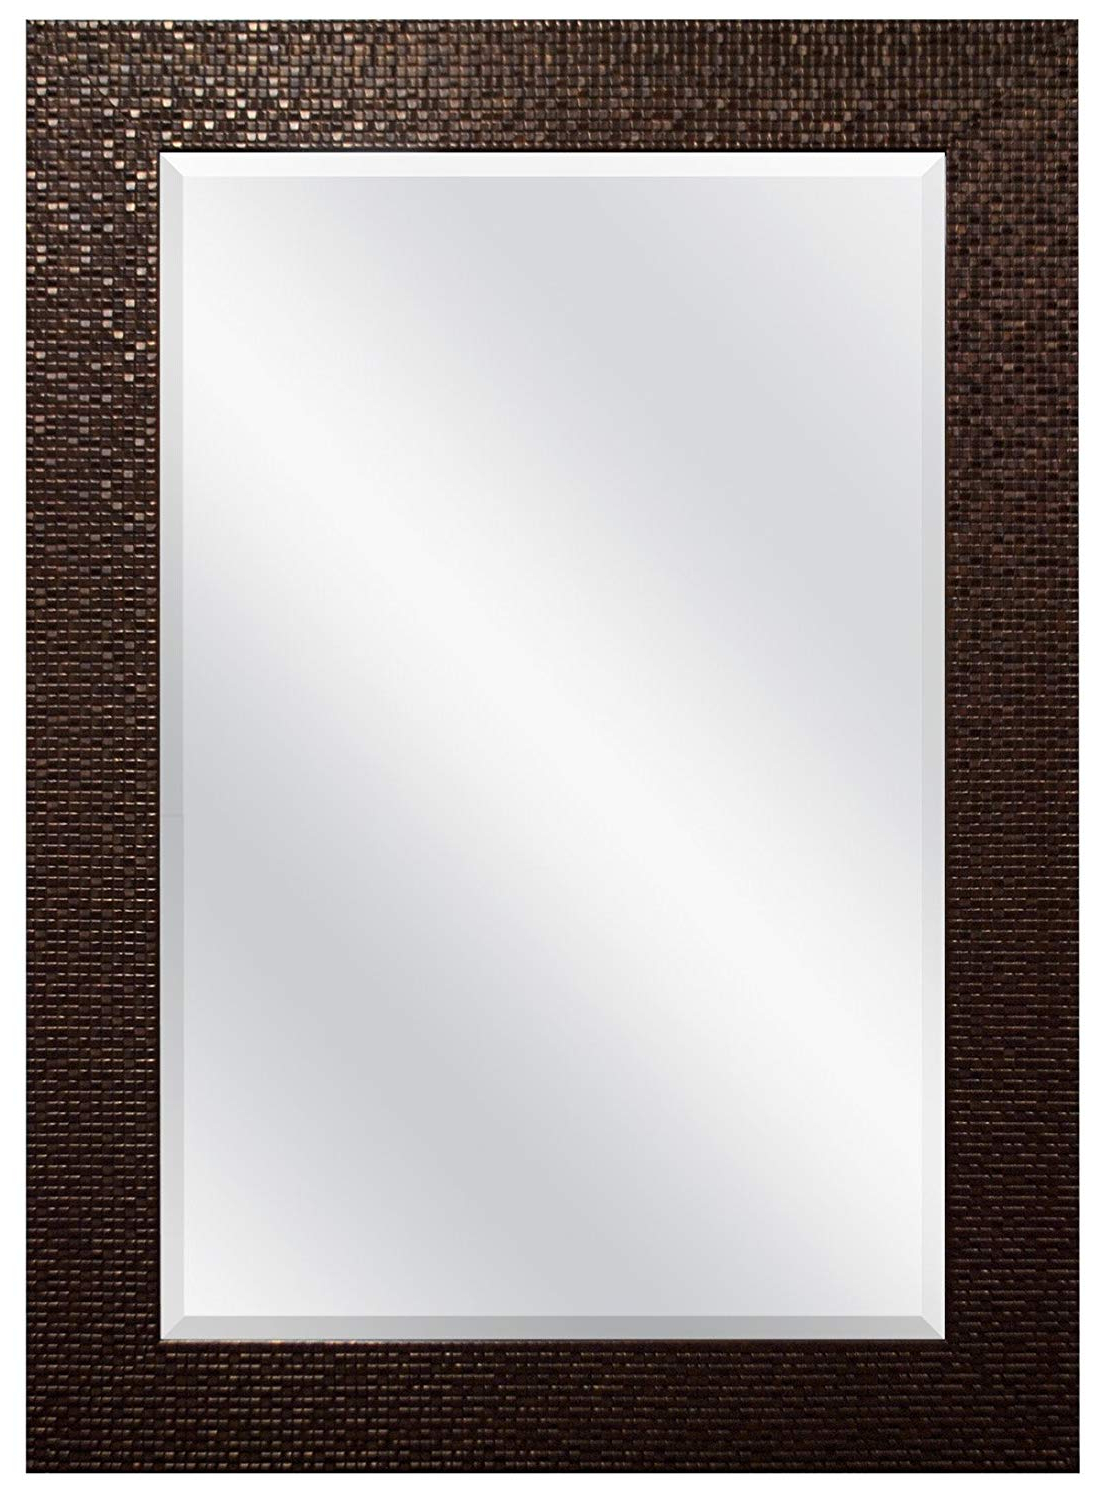 Mcs 24X36 Inch Embossed Tile Wall Mirror, 32X44 Inch Overall Size, Bronze Pertaining To Newest Grid Accent Mirrors (View 11 of 20)